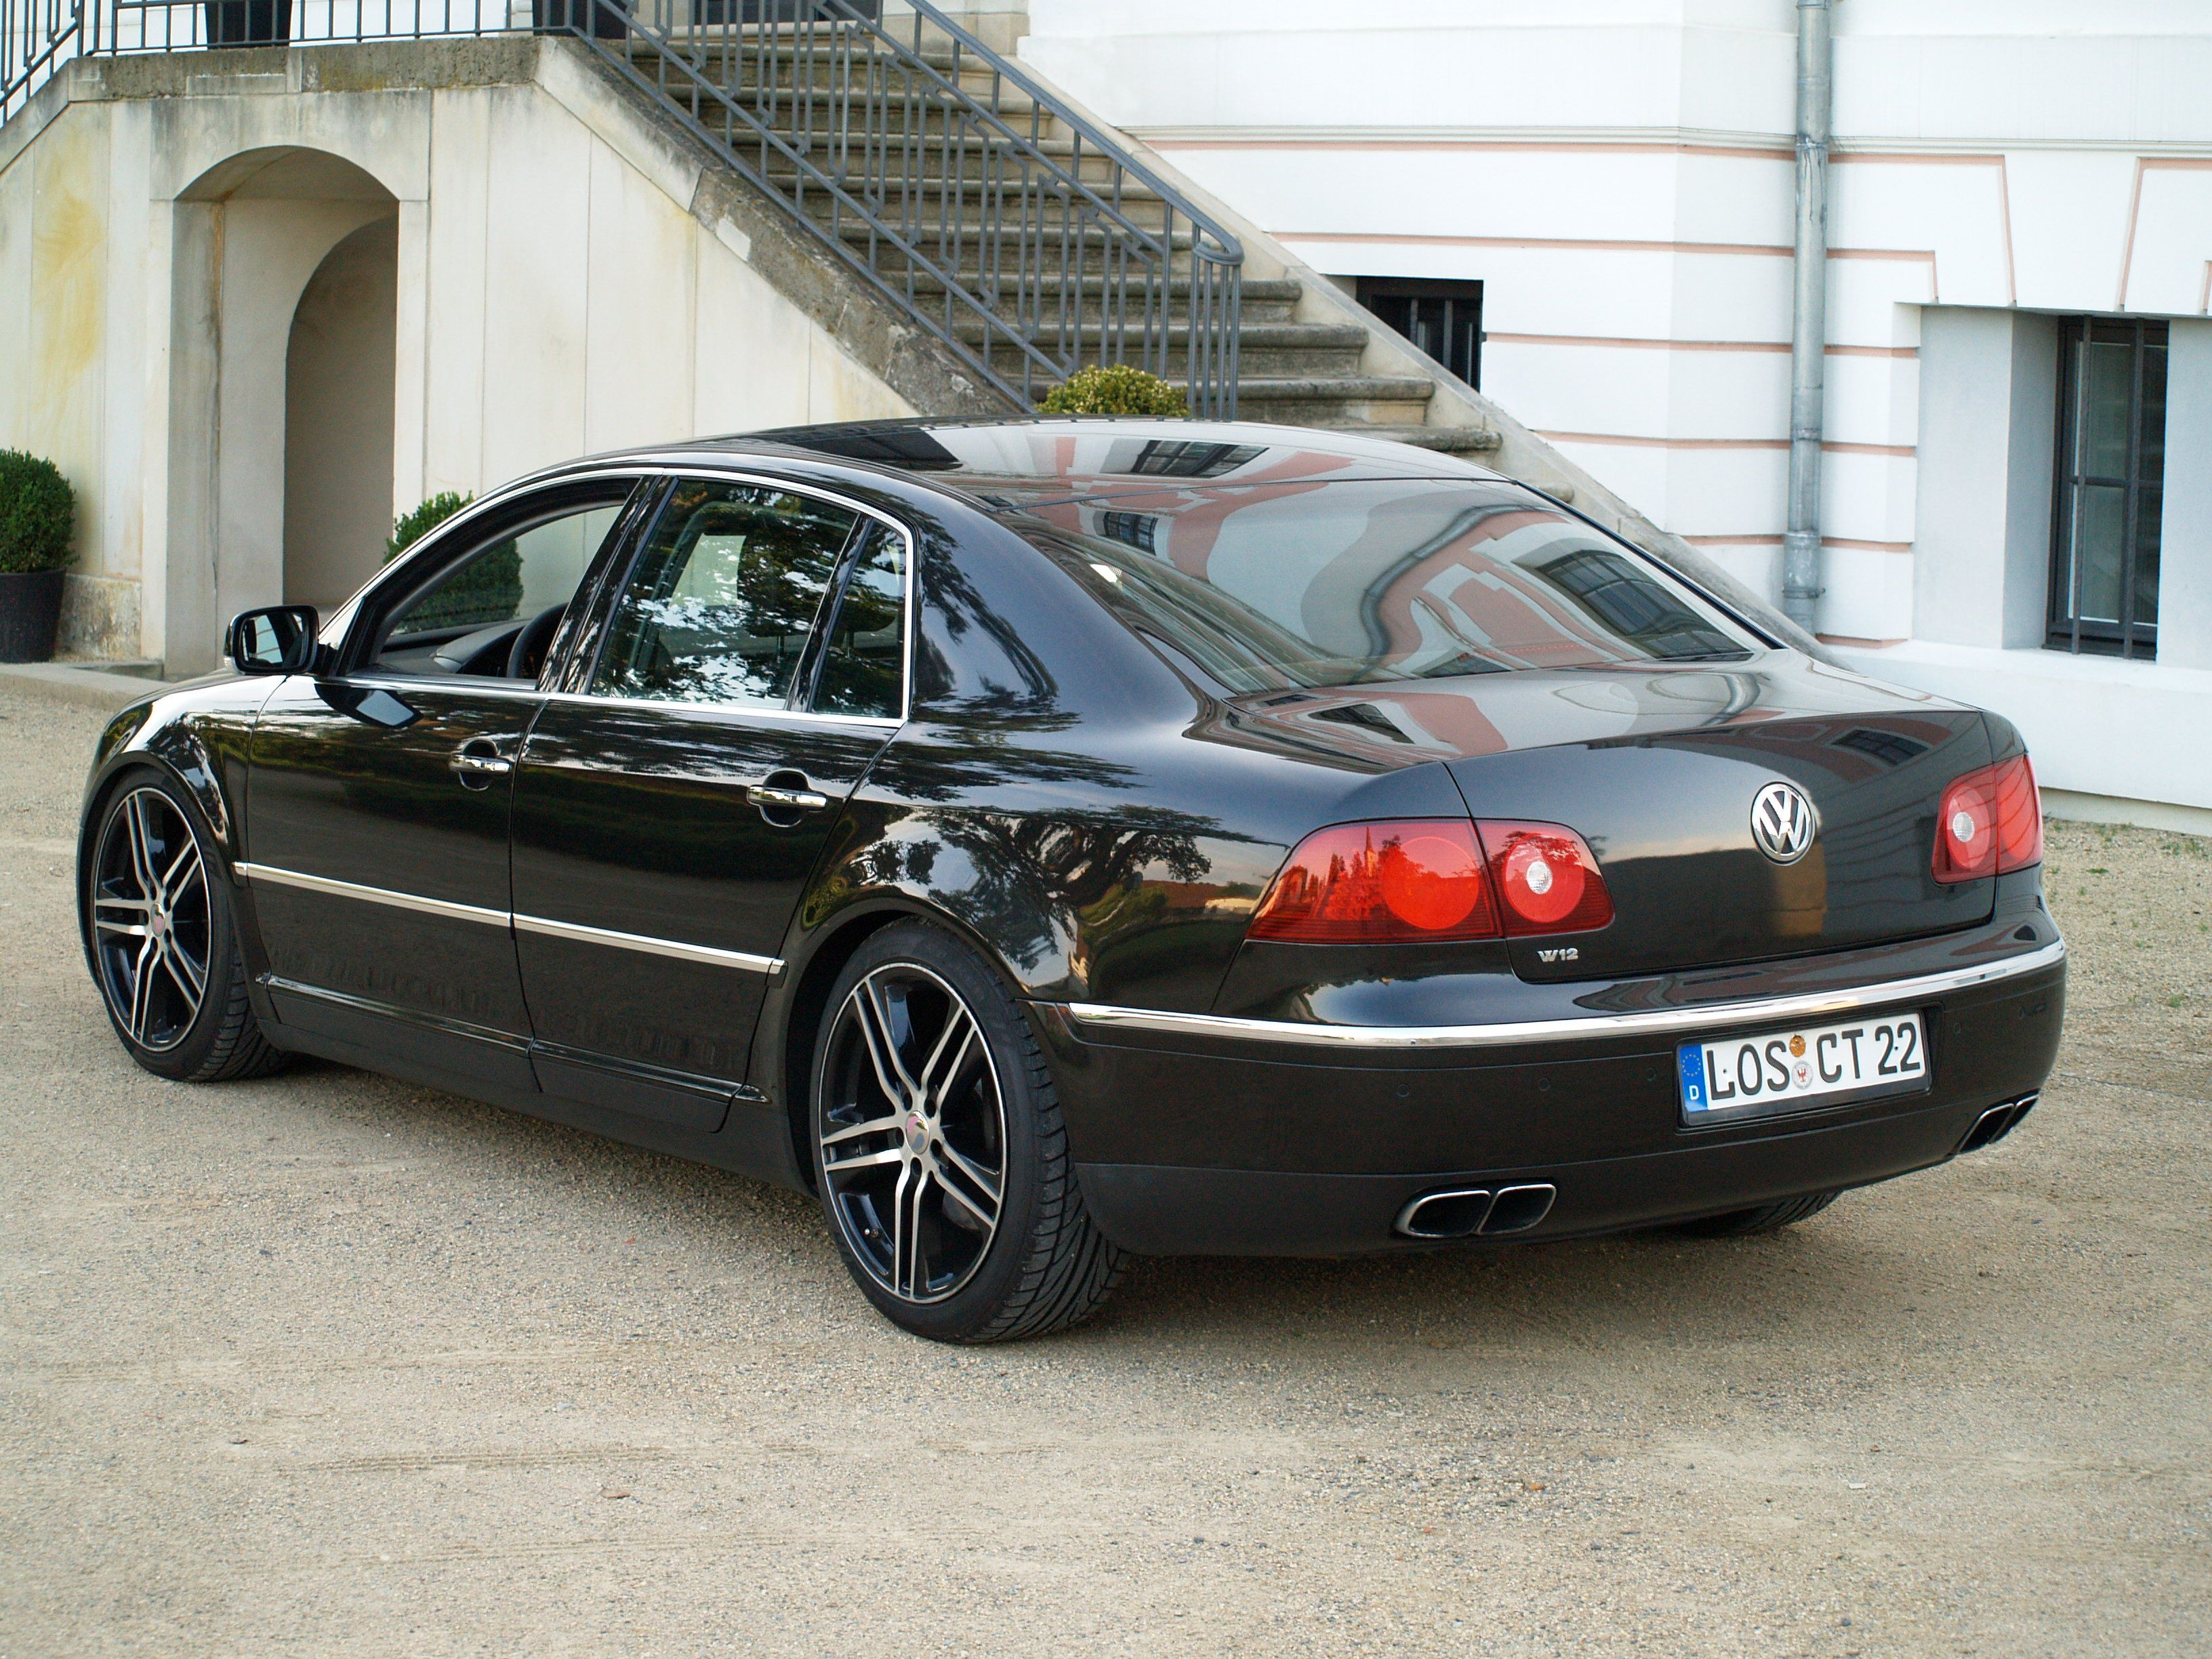 volkswagen phaeton w12 cars volkswagen volkswagen. Black Bedroom Furniture Sets. Home Design Ideas